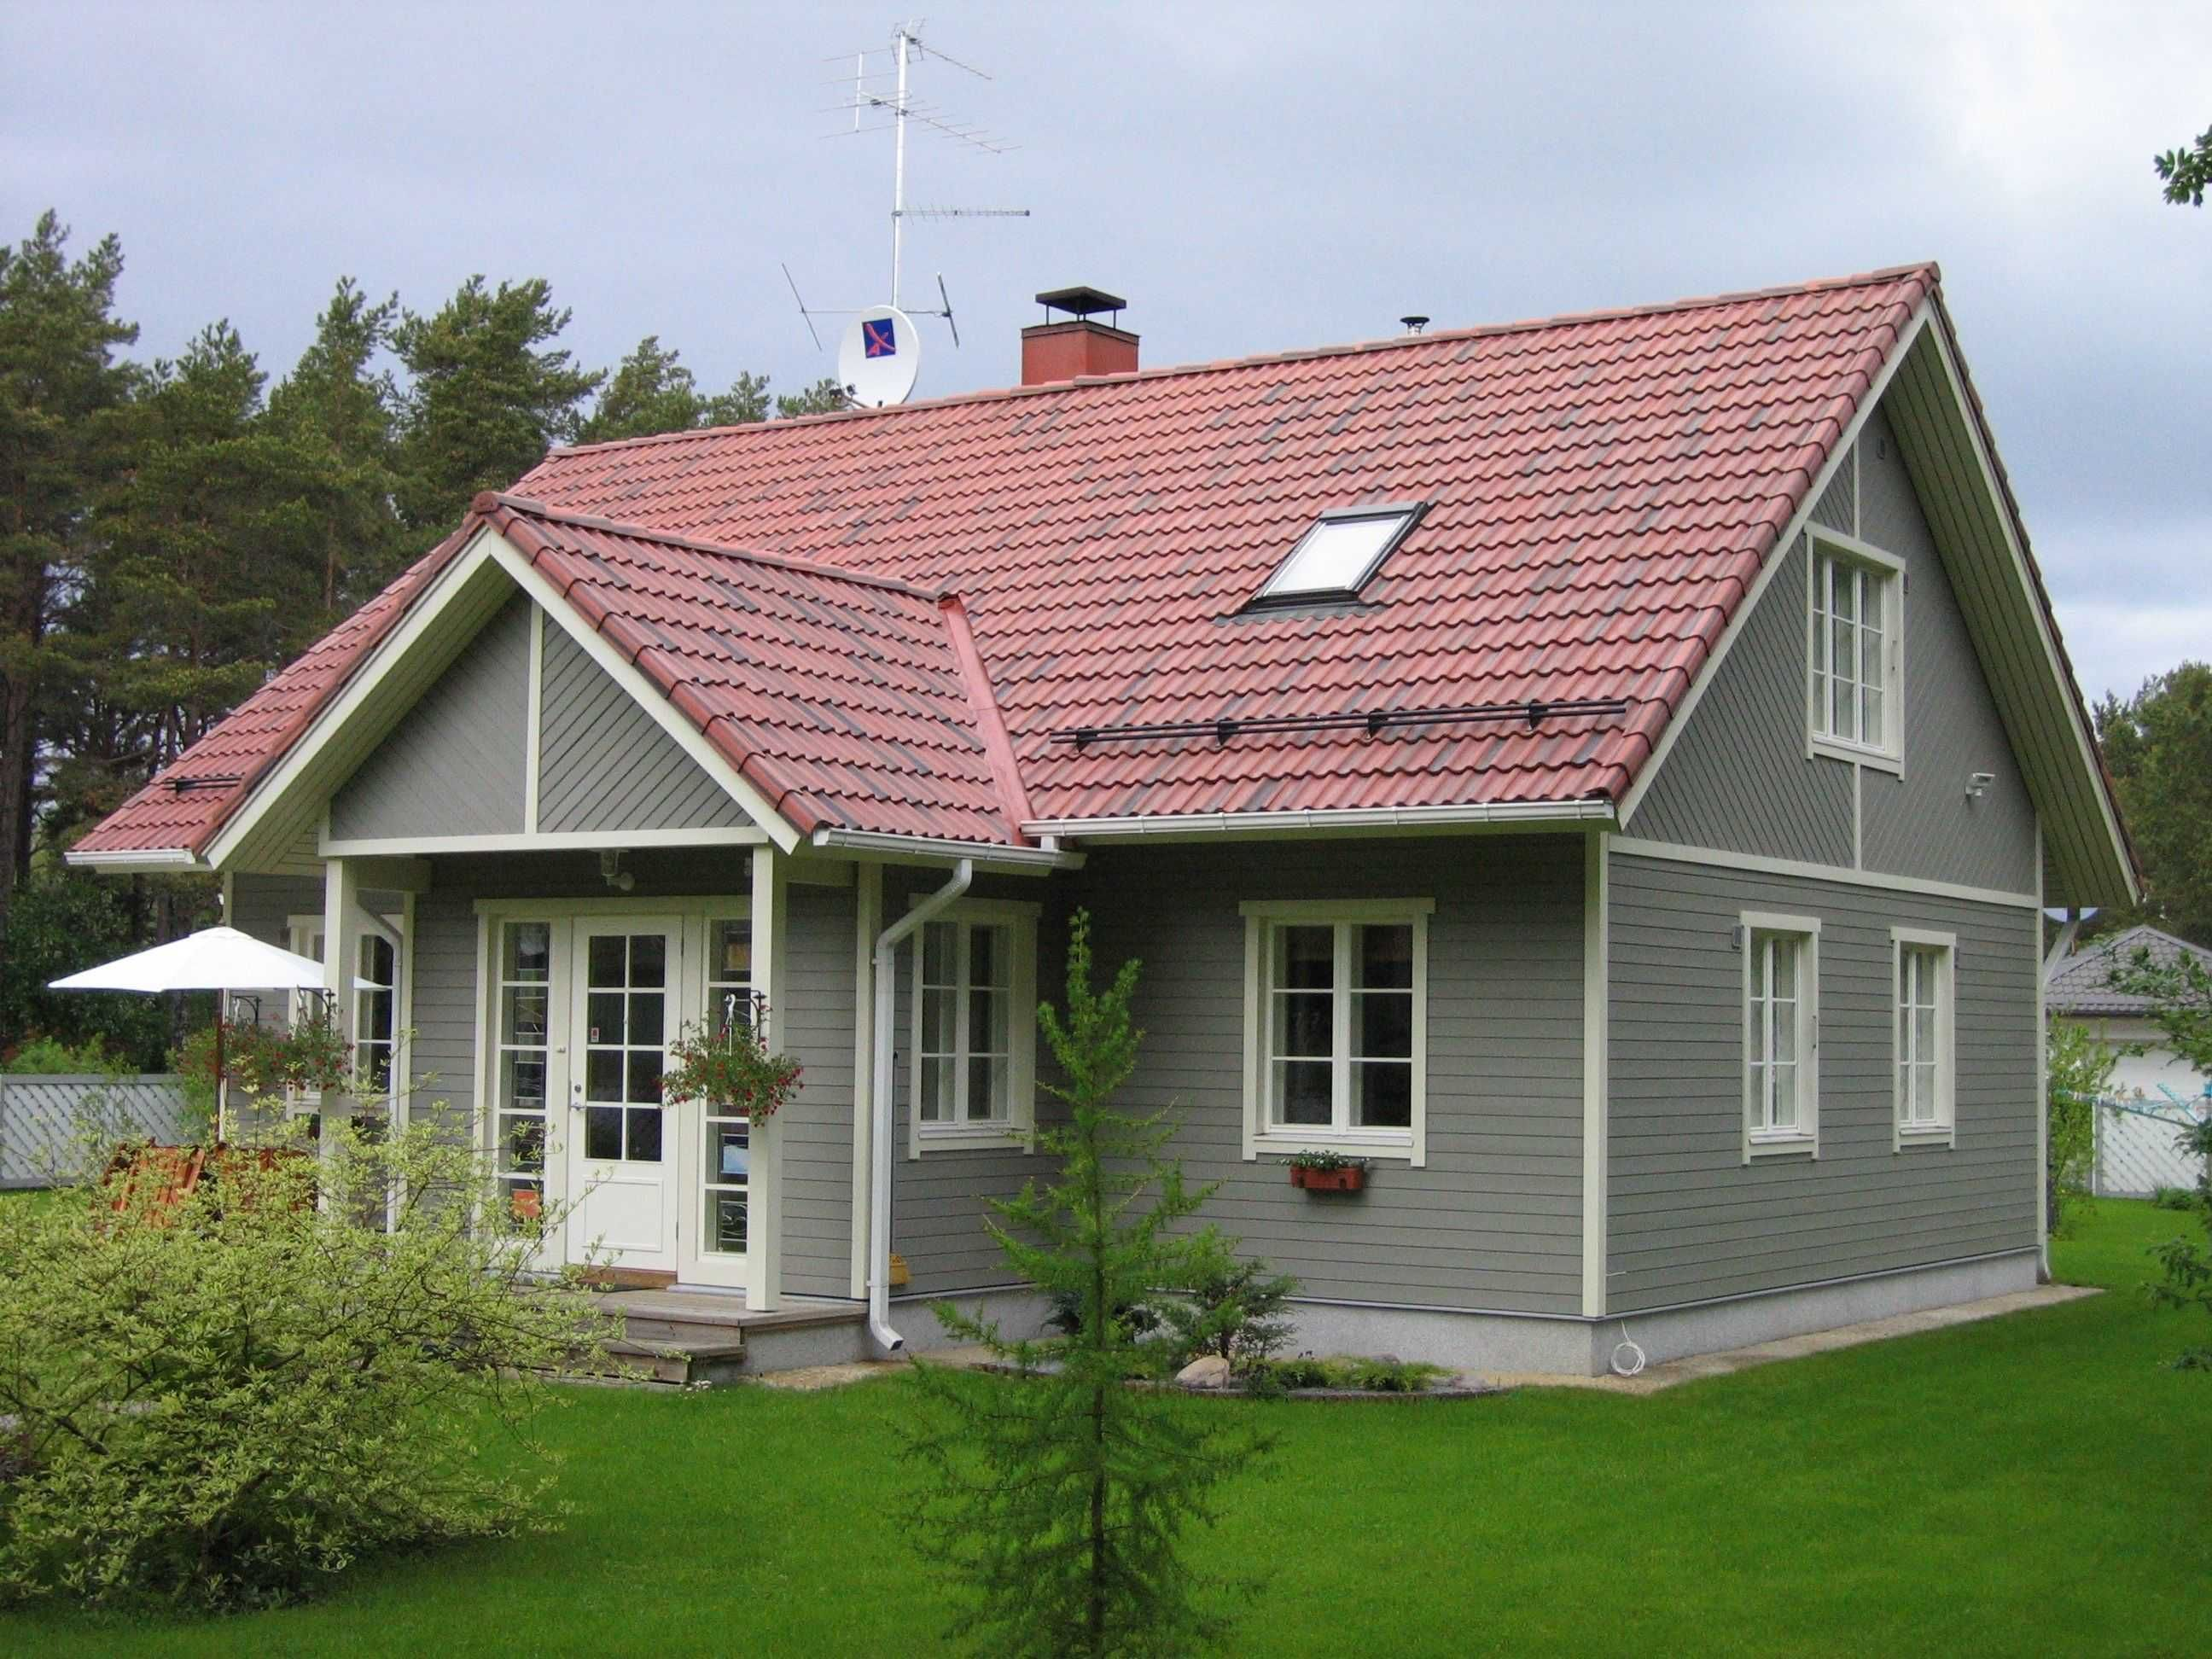 Well Known Exterior House Paint Colors With Red Roof Painters Near Me 2018 Qk11 House Paint Exterior Red Roof House Exterior Paint Colors For House